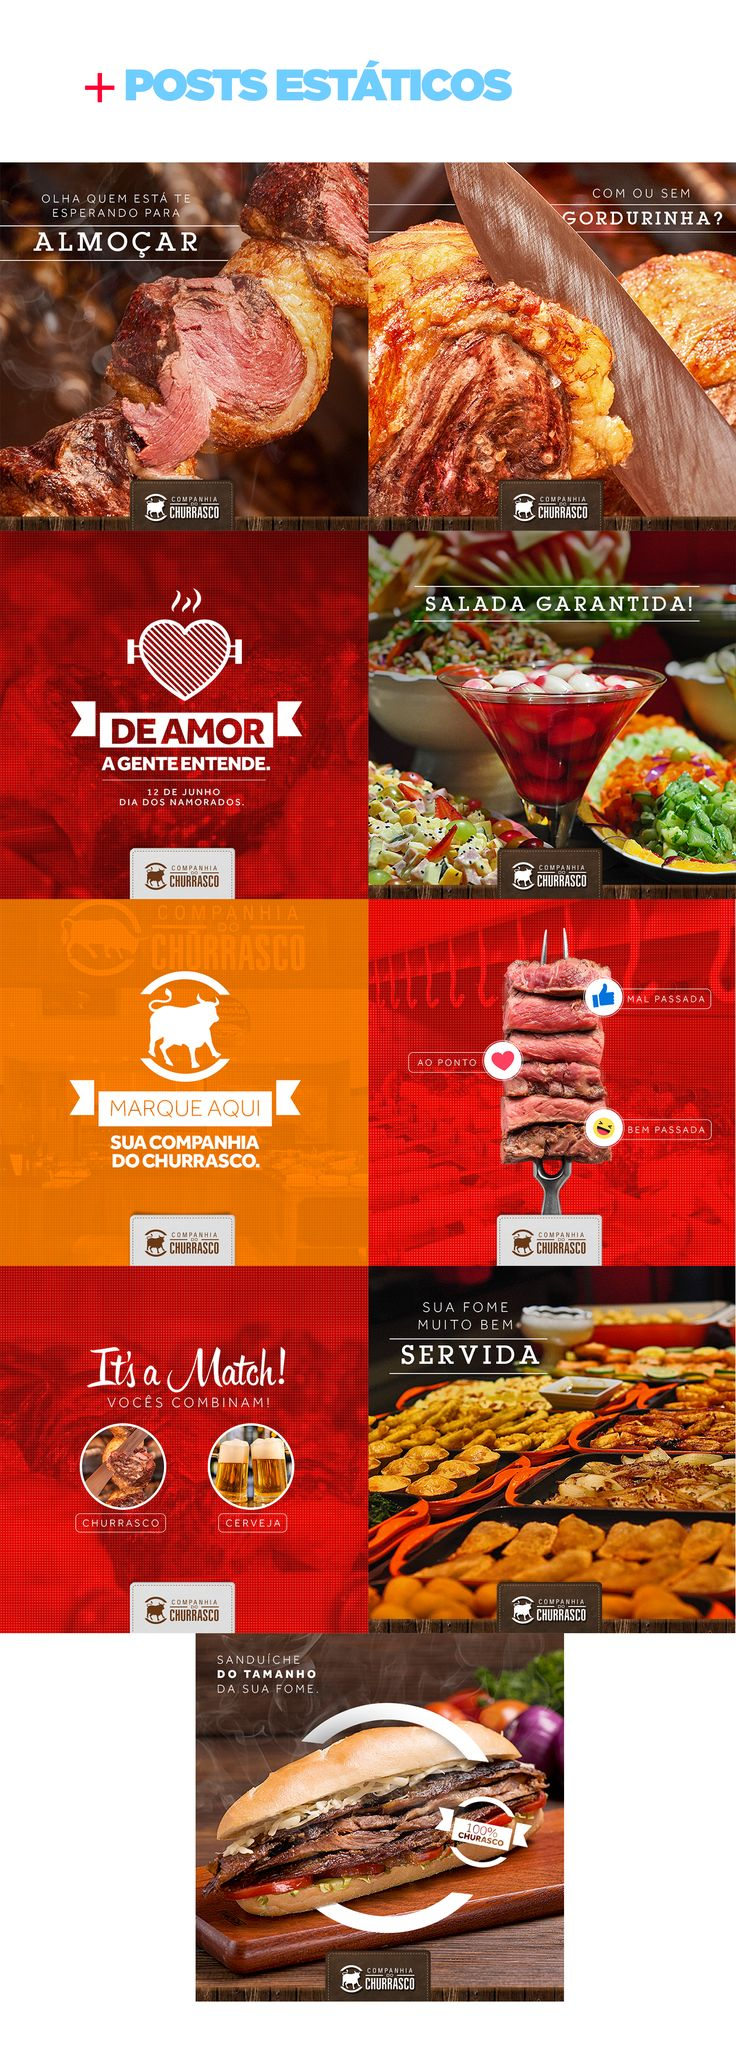 Social Media - Companhia do Churrasco on Behance - Tap the link to shop on our official online store! You can also join our affiliate and/or rewards programs for FREE!